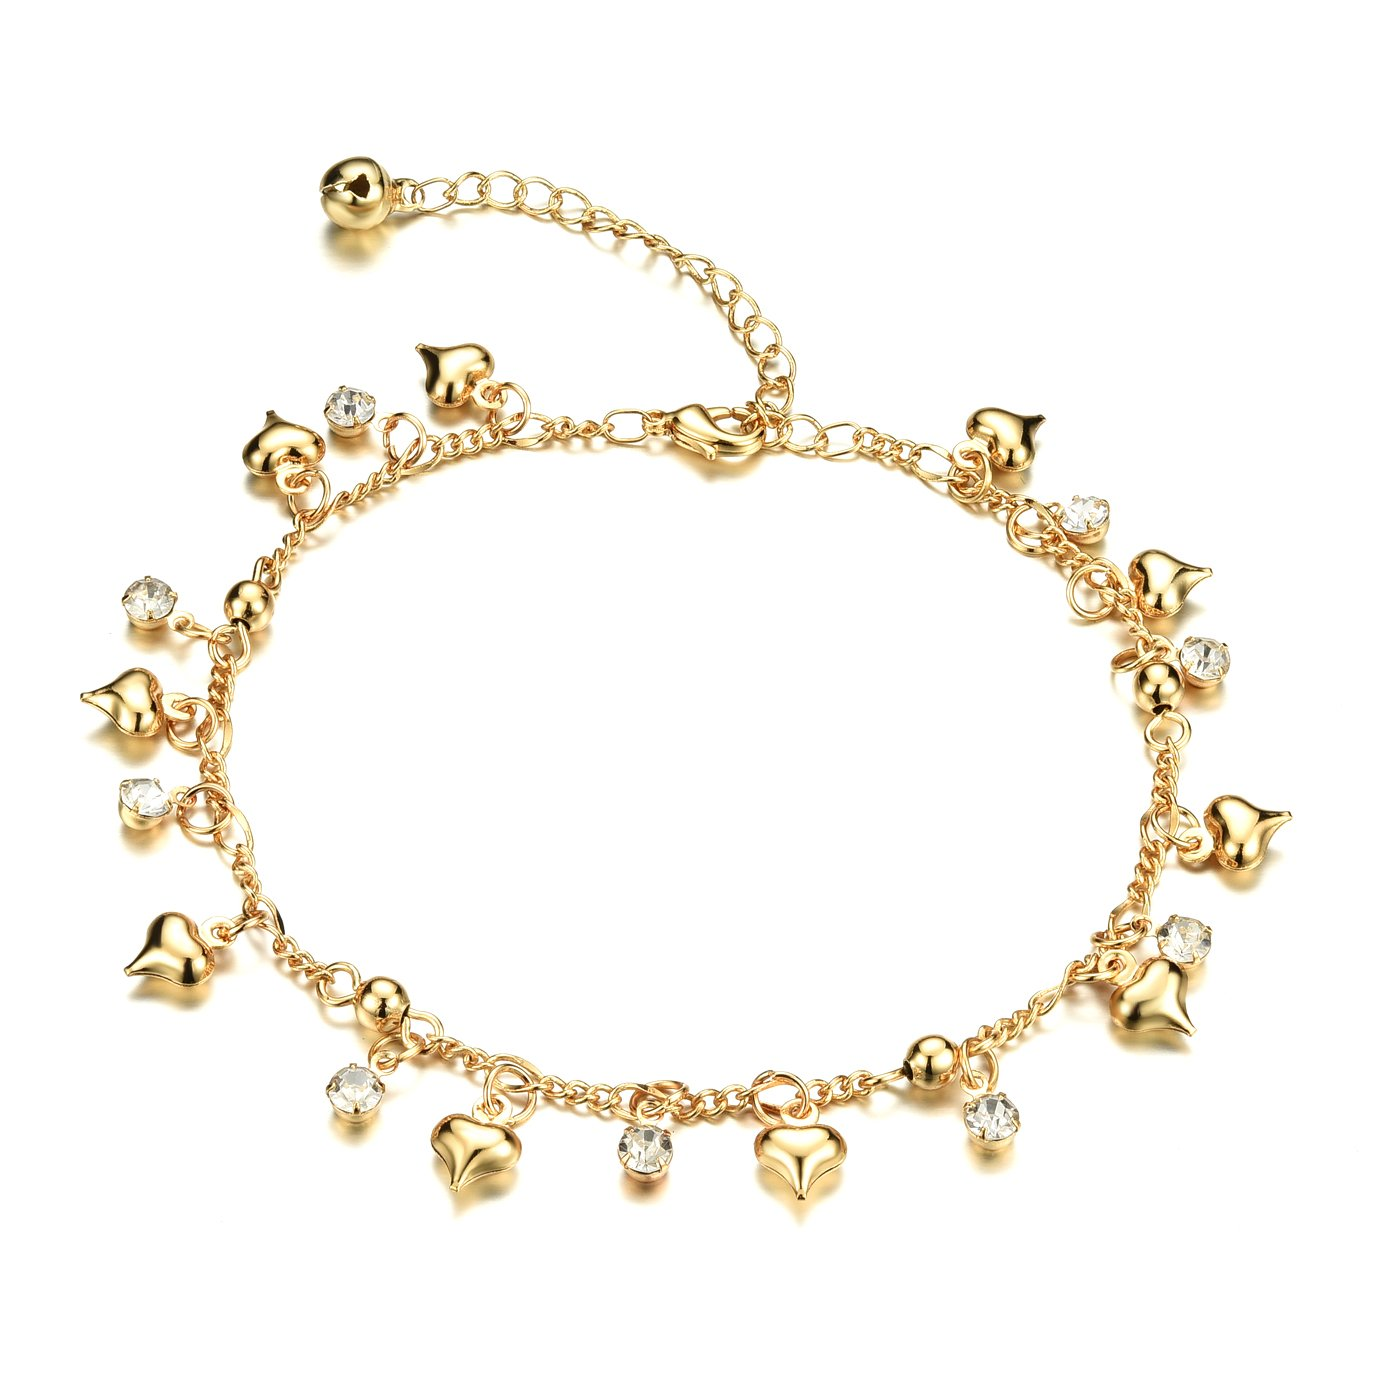 Fashion Aanklets 18K Gold Tone Rhinestone Charm Beach Foot Chain Aanklet for Women L7.99+2''